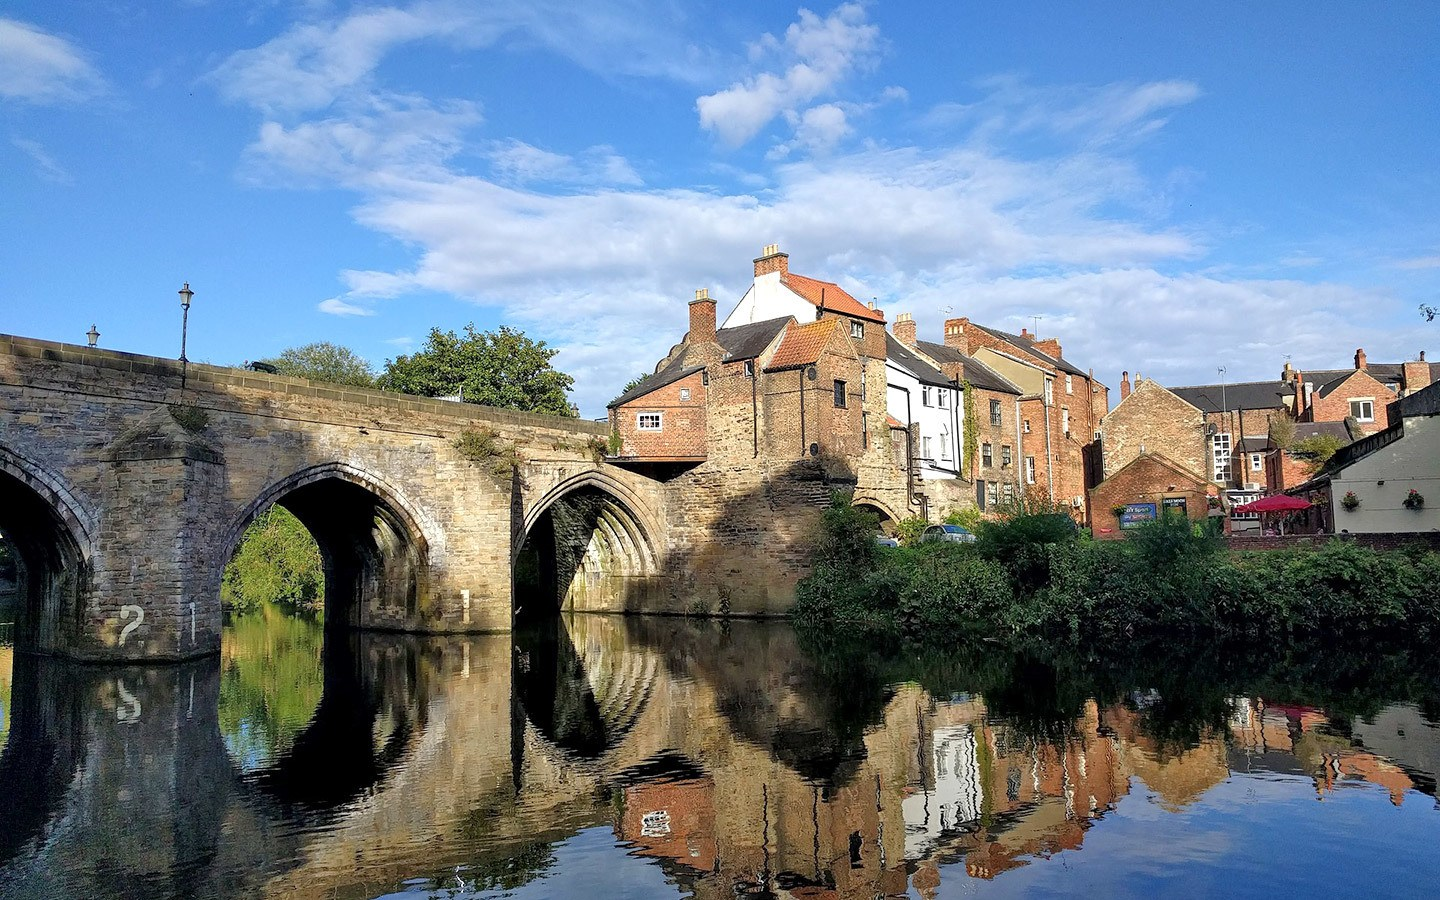 Bridge and buildings on the riverside in Durham, an alternative to visiting Oxford